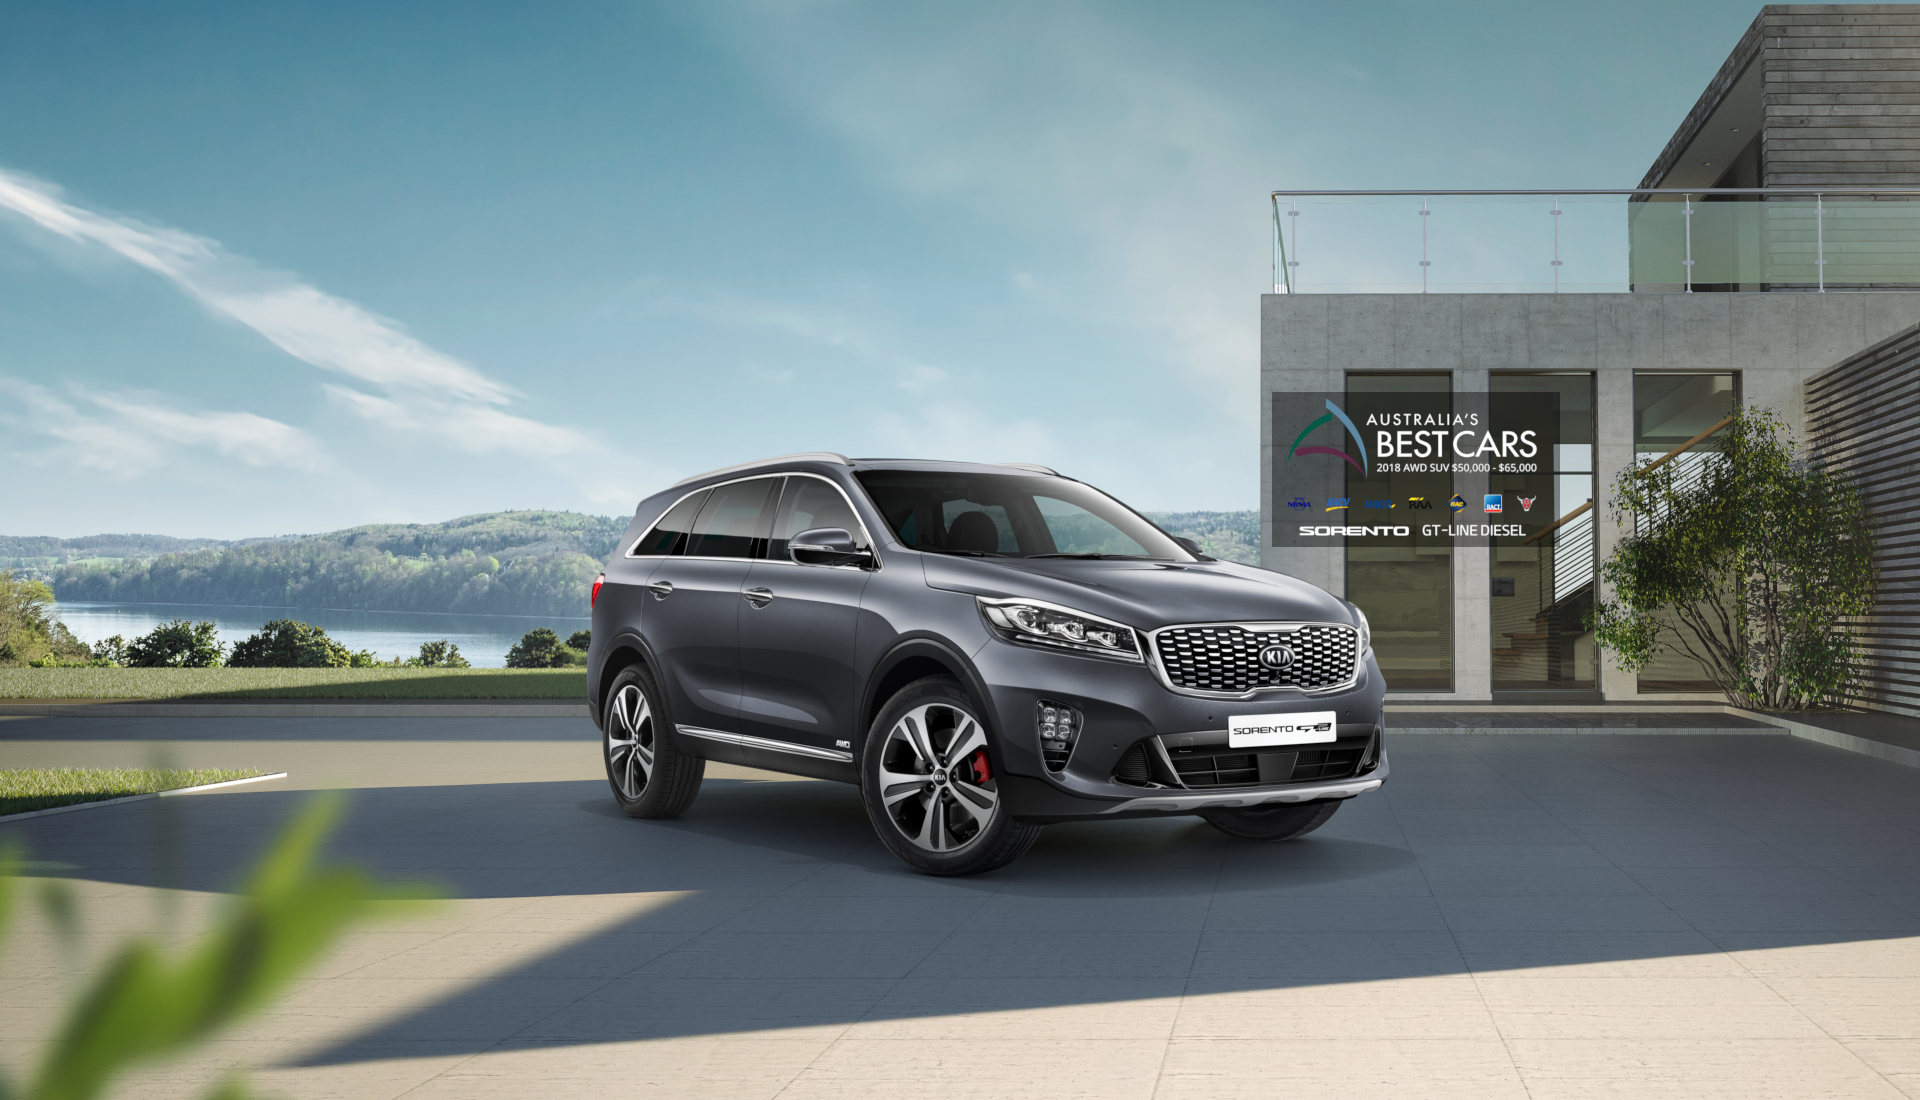 kia-new-sorento-keyvisual-pc